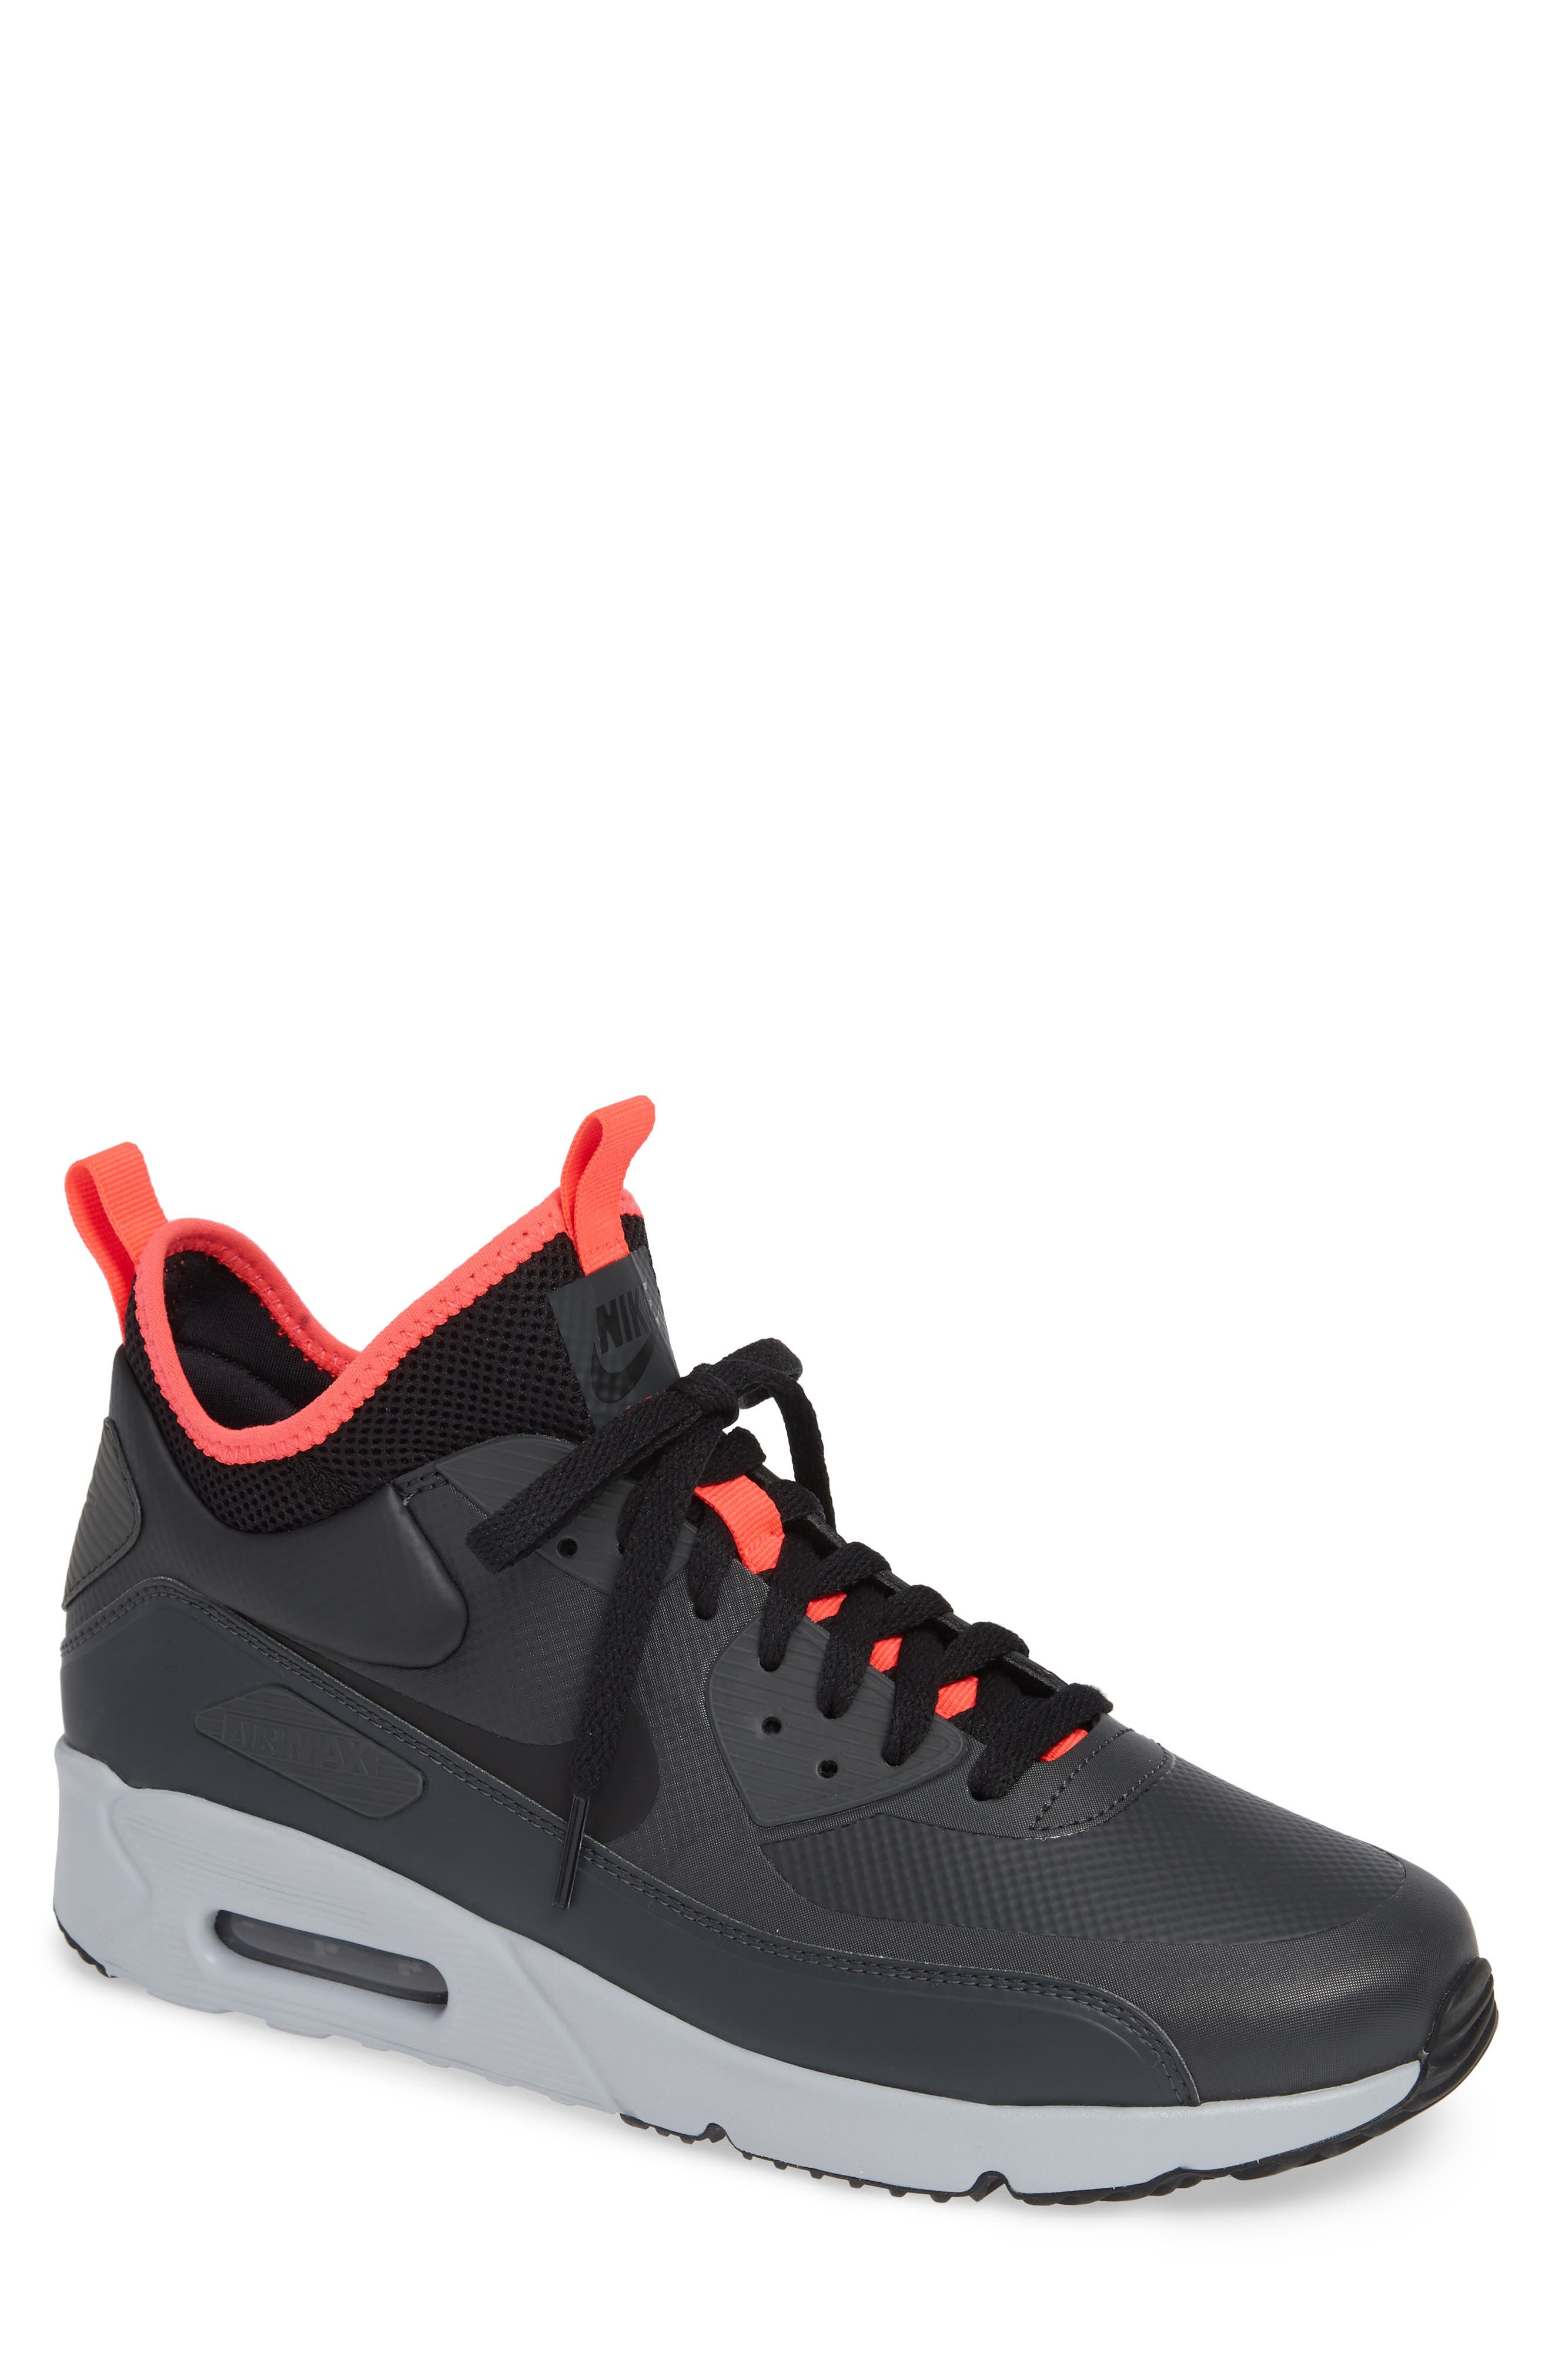 Air Max 90 Ultra Mid Winter Sneaker,                         Main,                         color, ANTHRACITE/ BLACK/ SOLAR RED